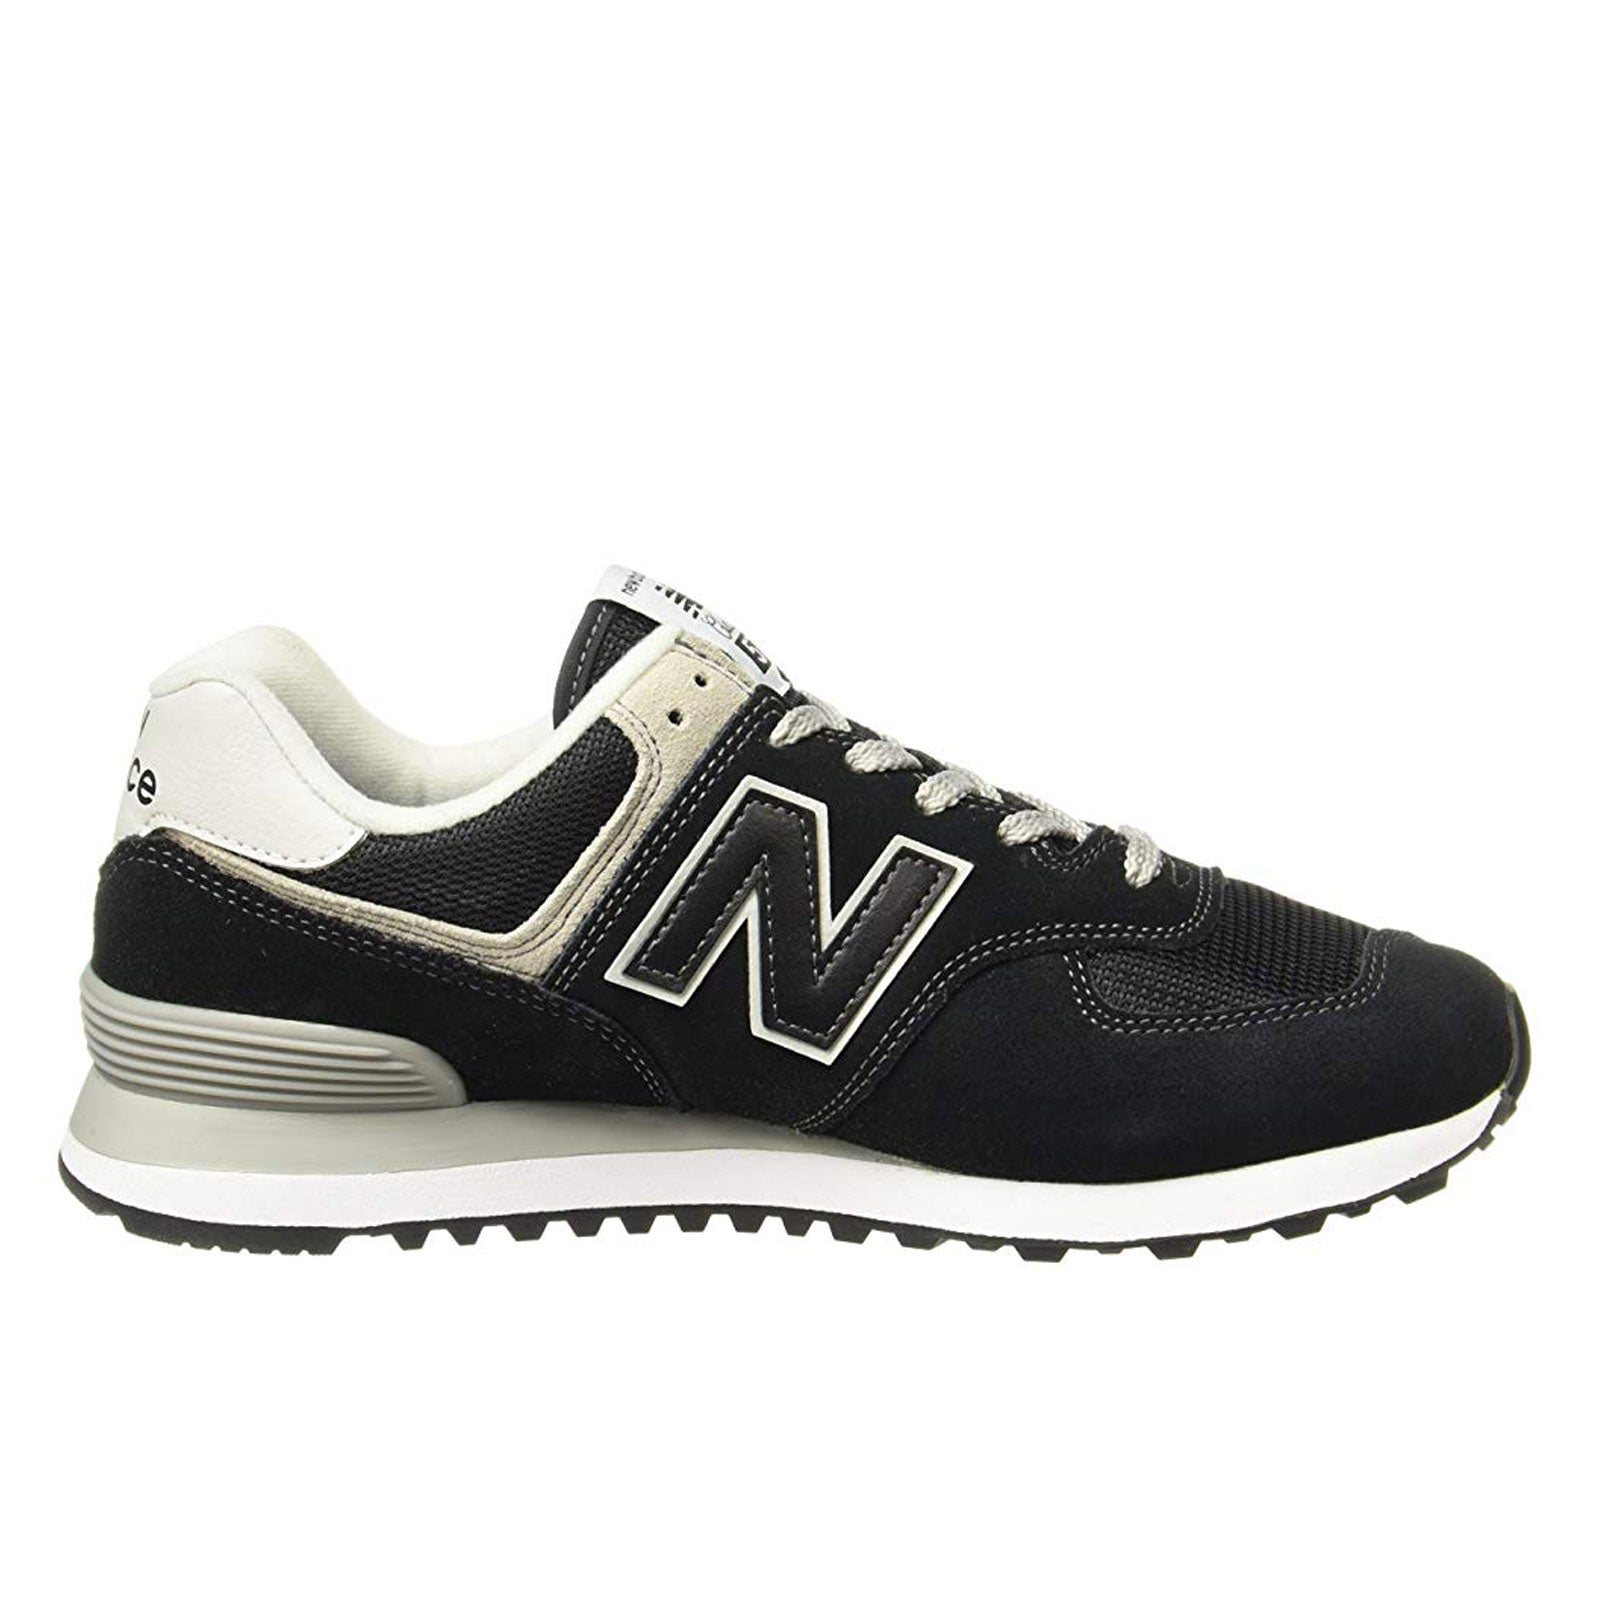 New Balance Classics 574-Black With White